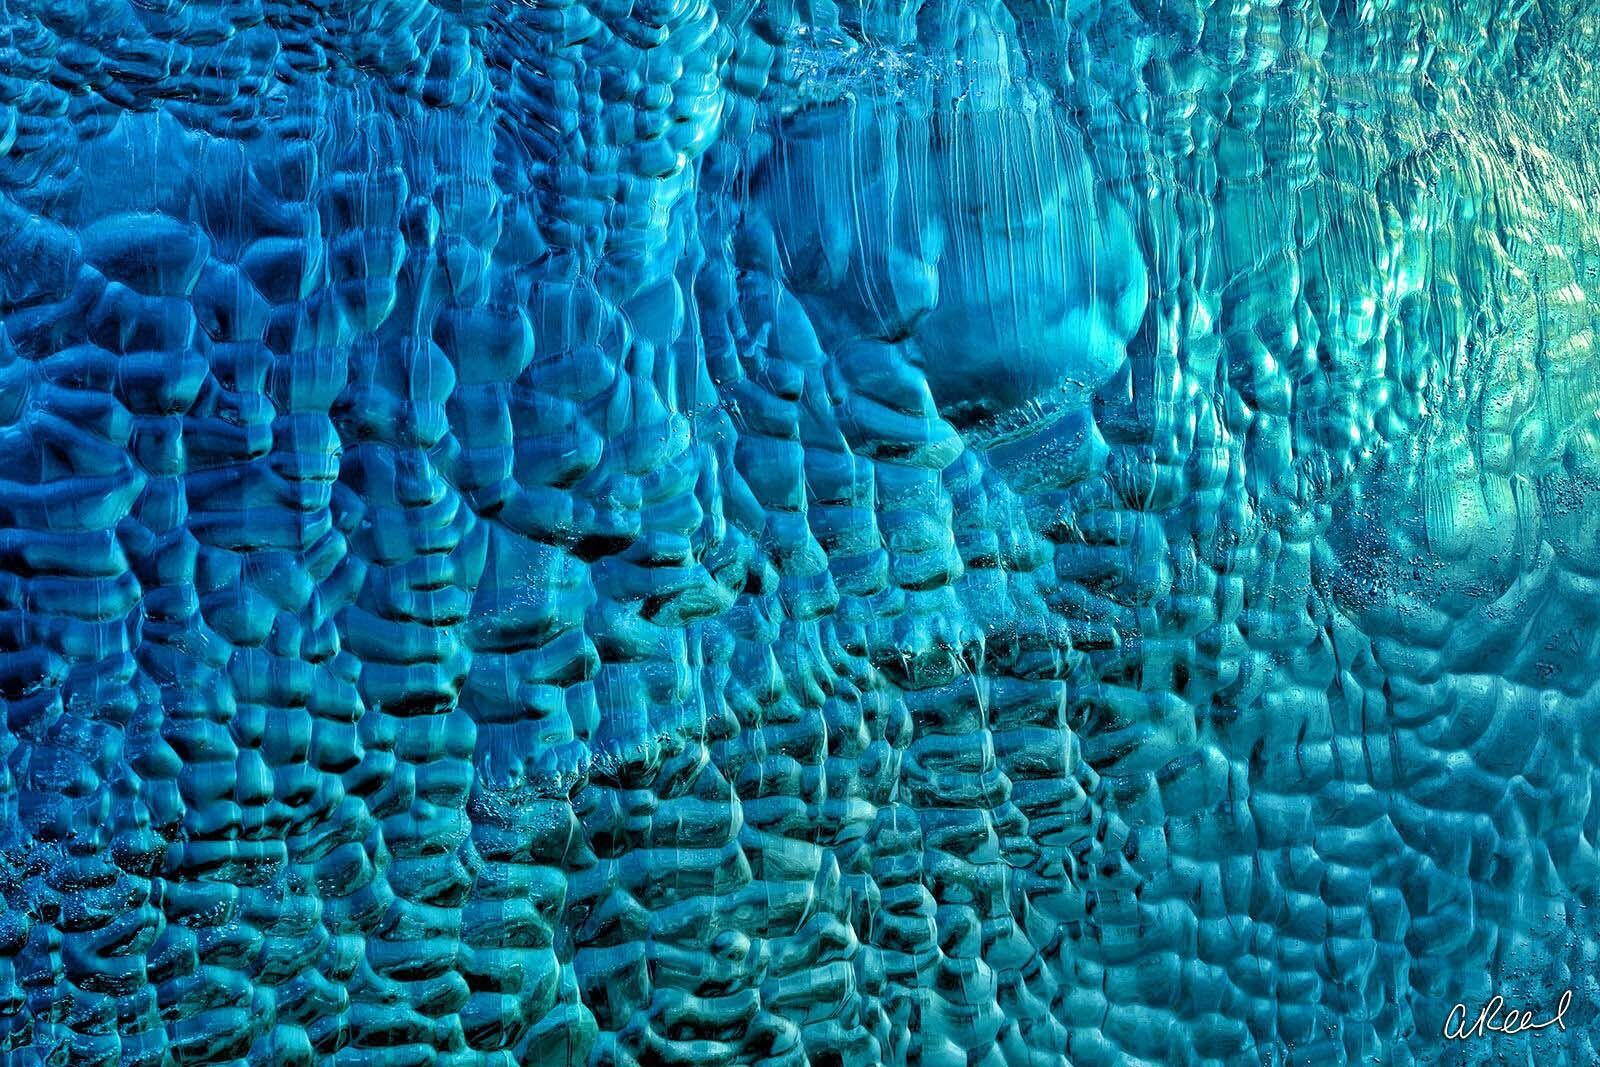 fine art, abstract, limited edition, blue, photo